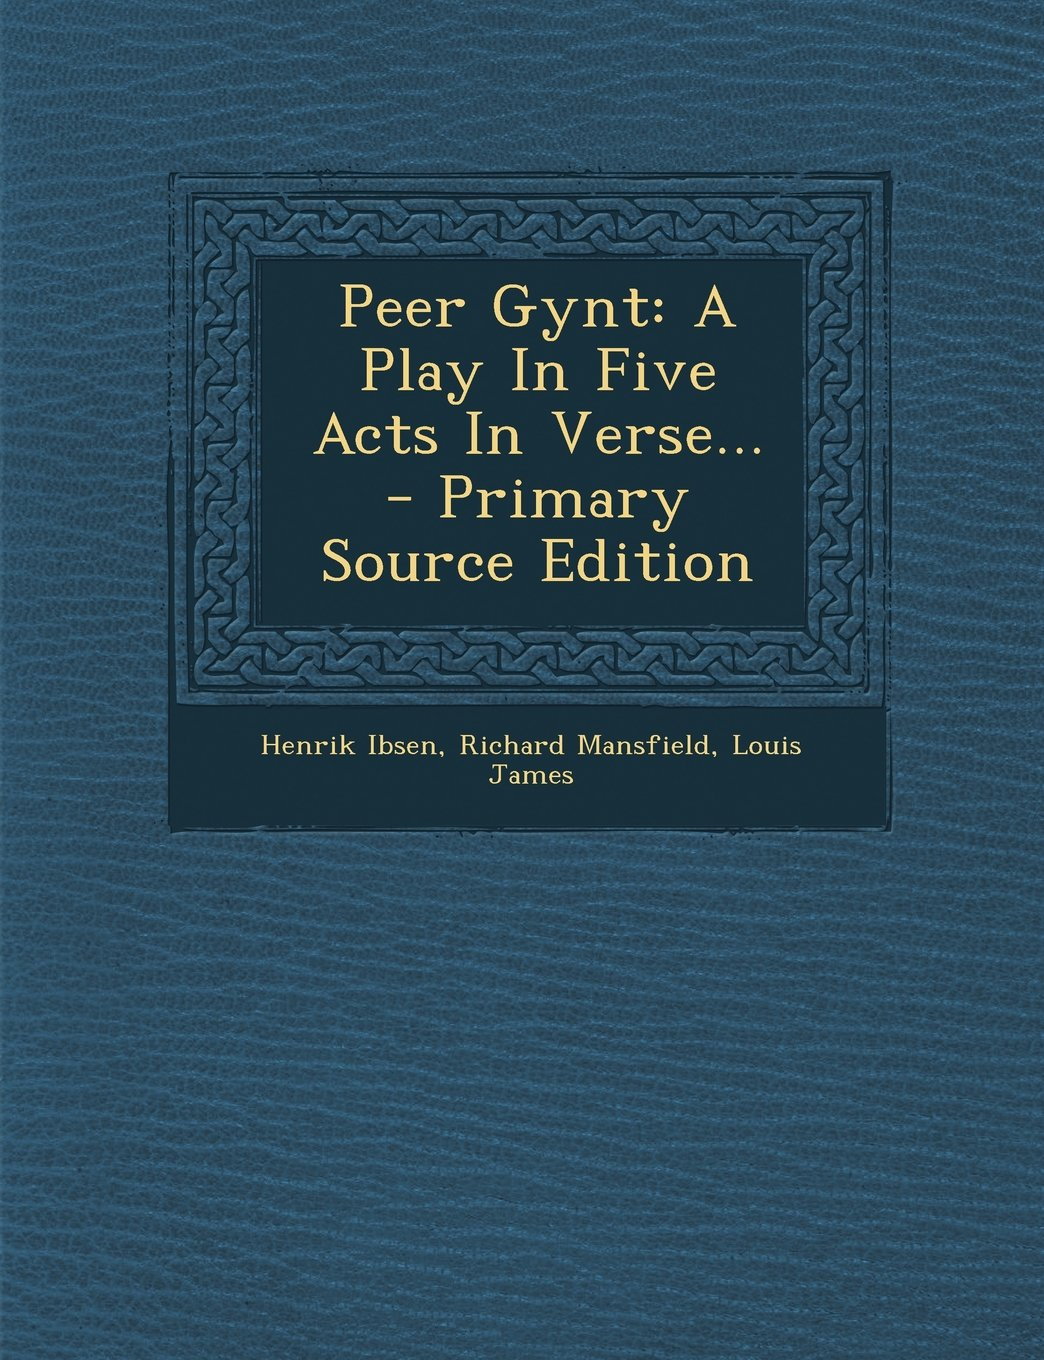 Read Online Peer Gynt: A Play in Five Acts in Verse... - Primary Source Edition ebook